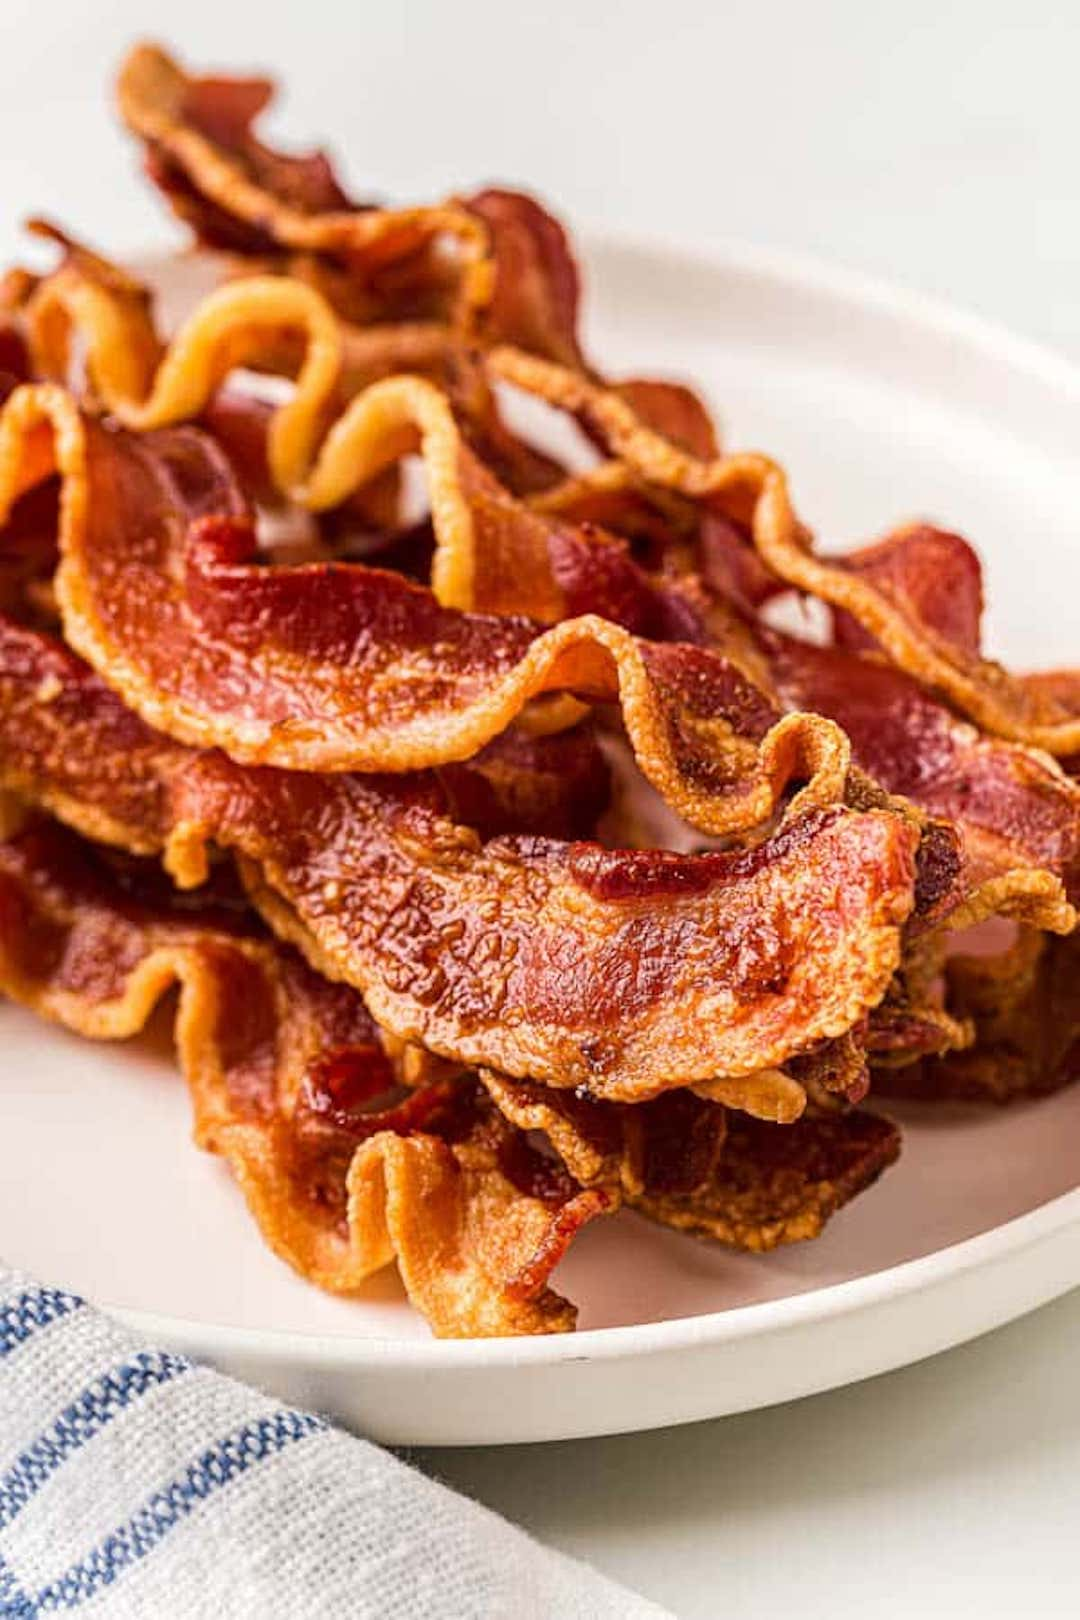 image of air fryer bacon strips on a white plate